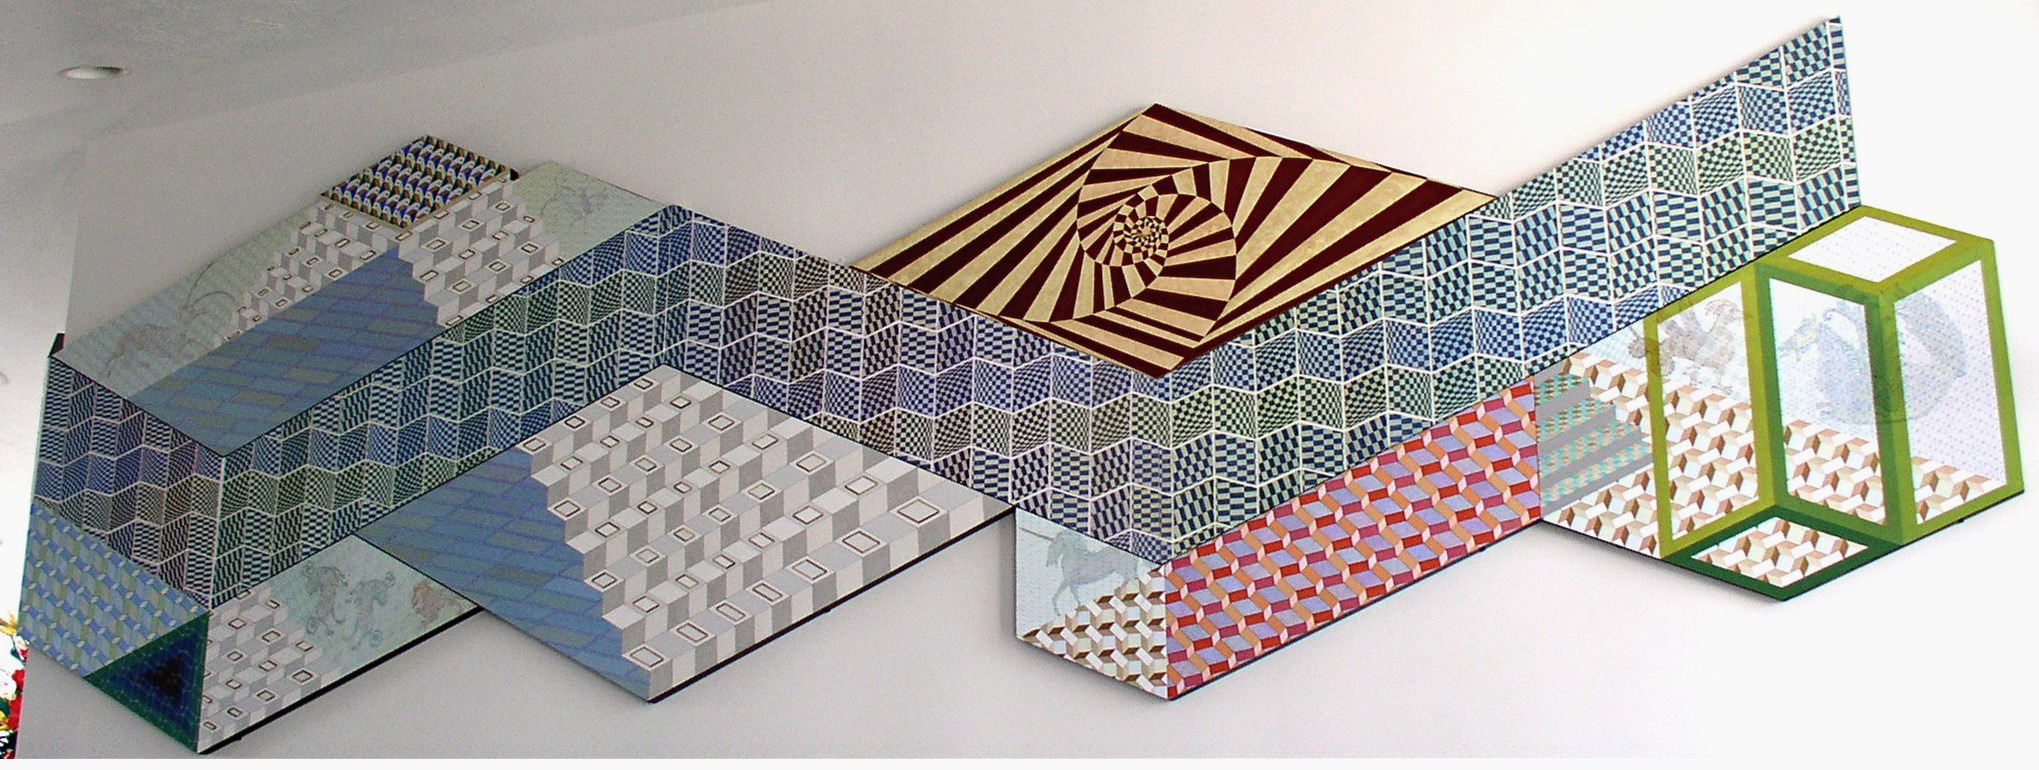 A band of repeating double woven cotton patterns separating a pyramid of painte